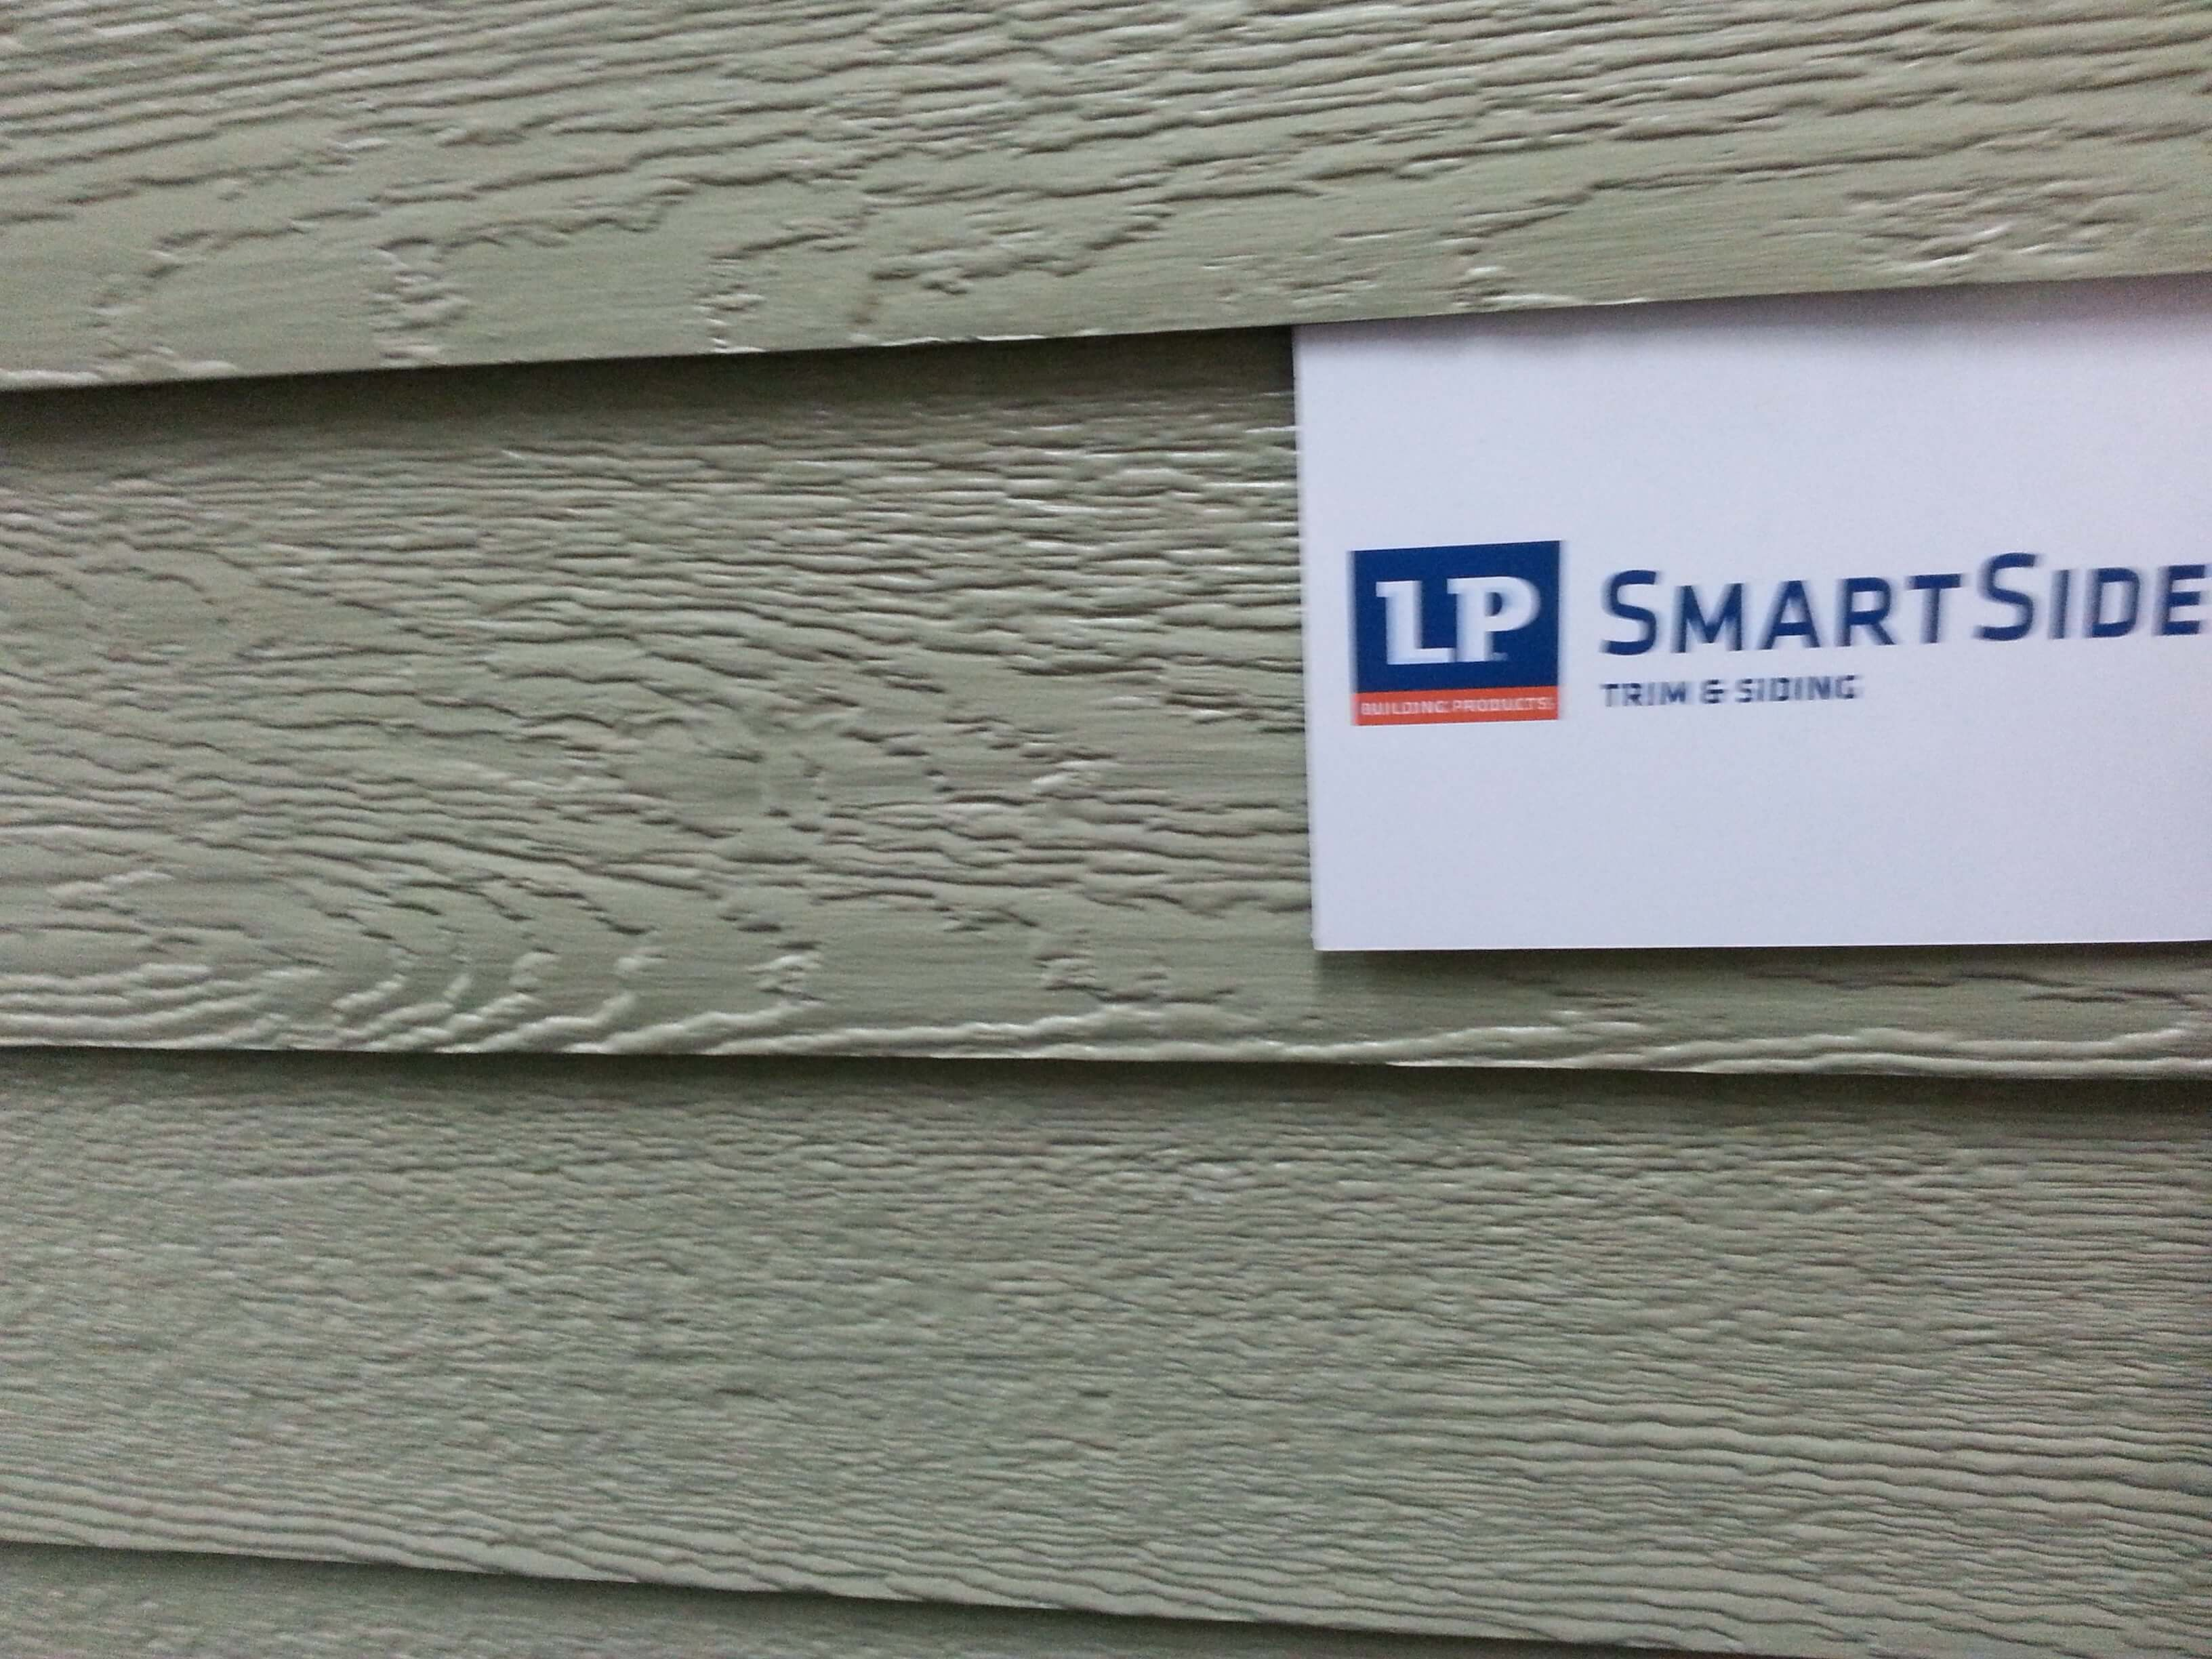 Particle board vs plywood - Here Comes Lp Smartside